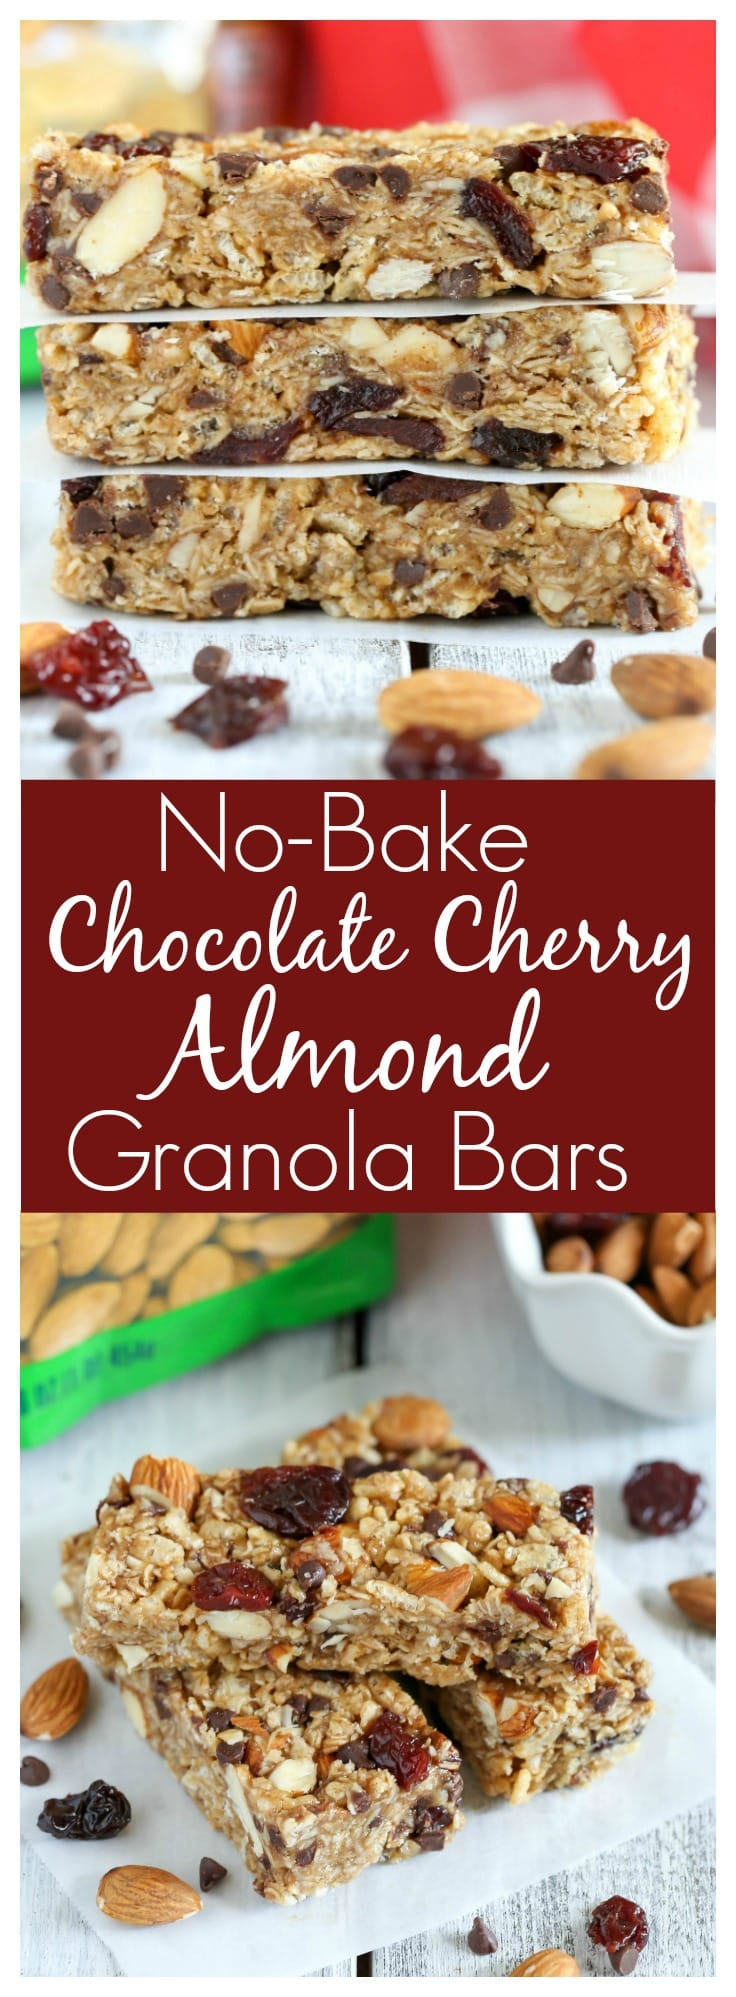 These No-Bake Chocolate Cherry Almond Granola Bars are easy to make and perfectfor a healthier snack!